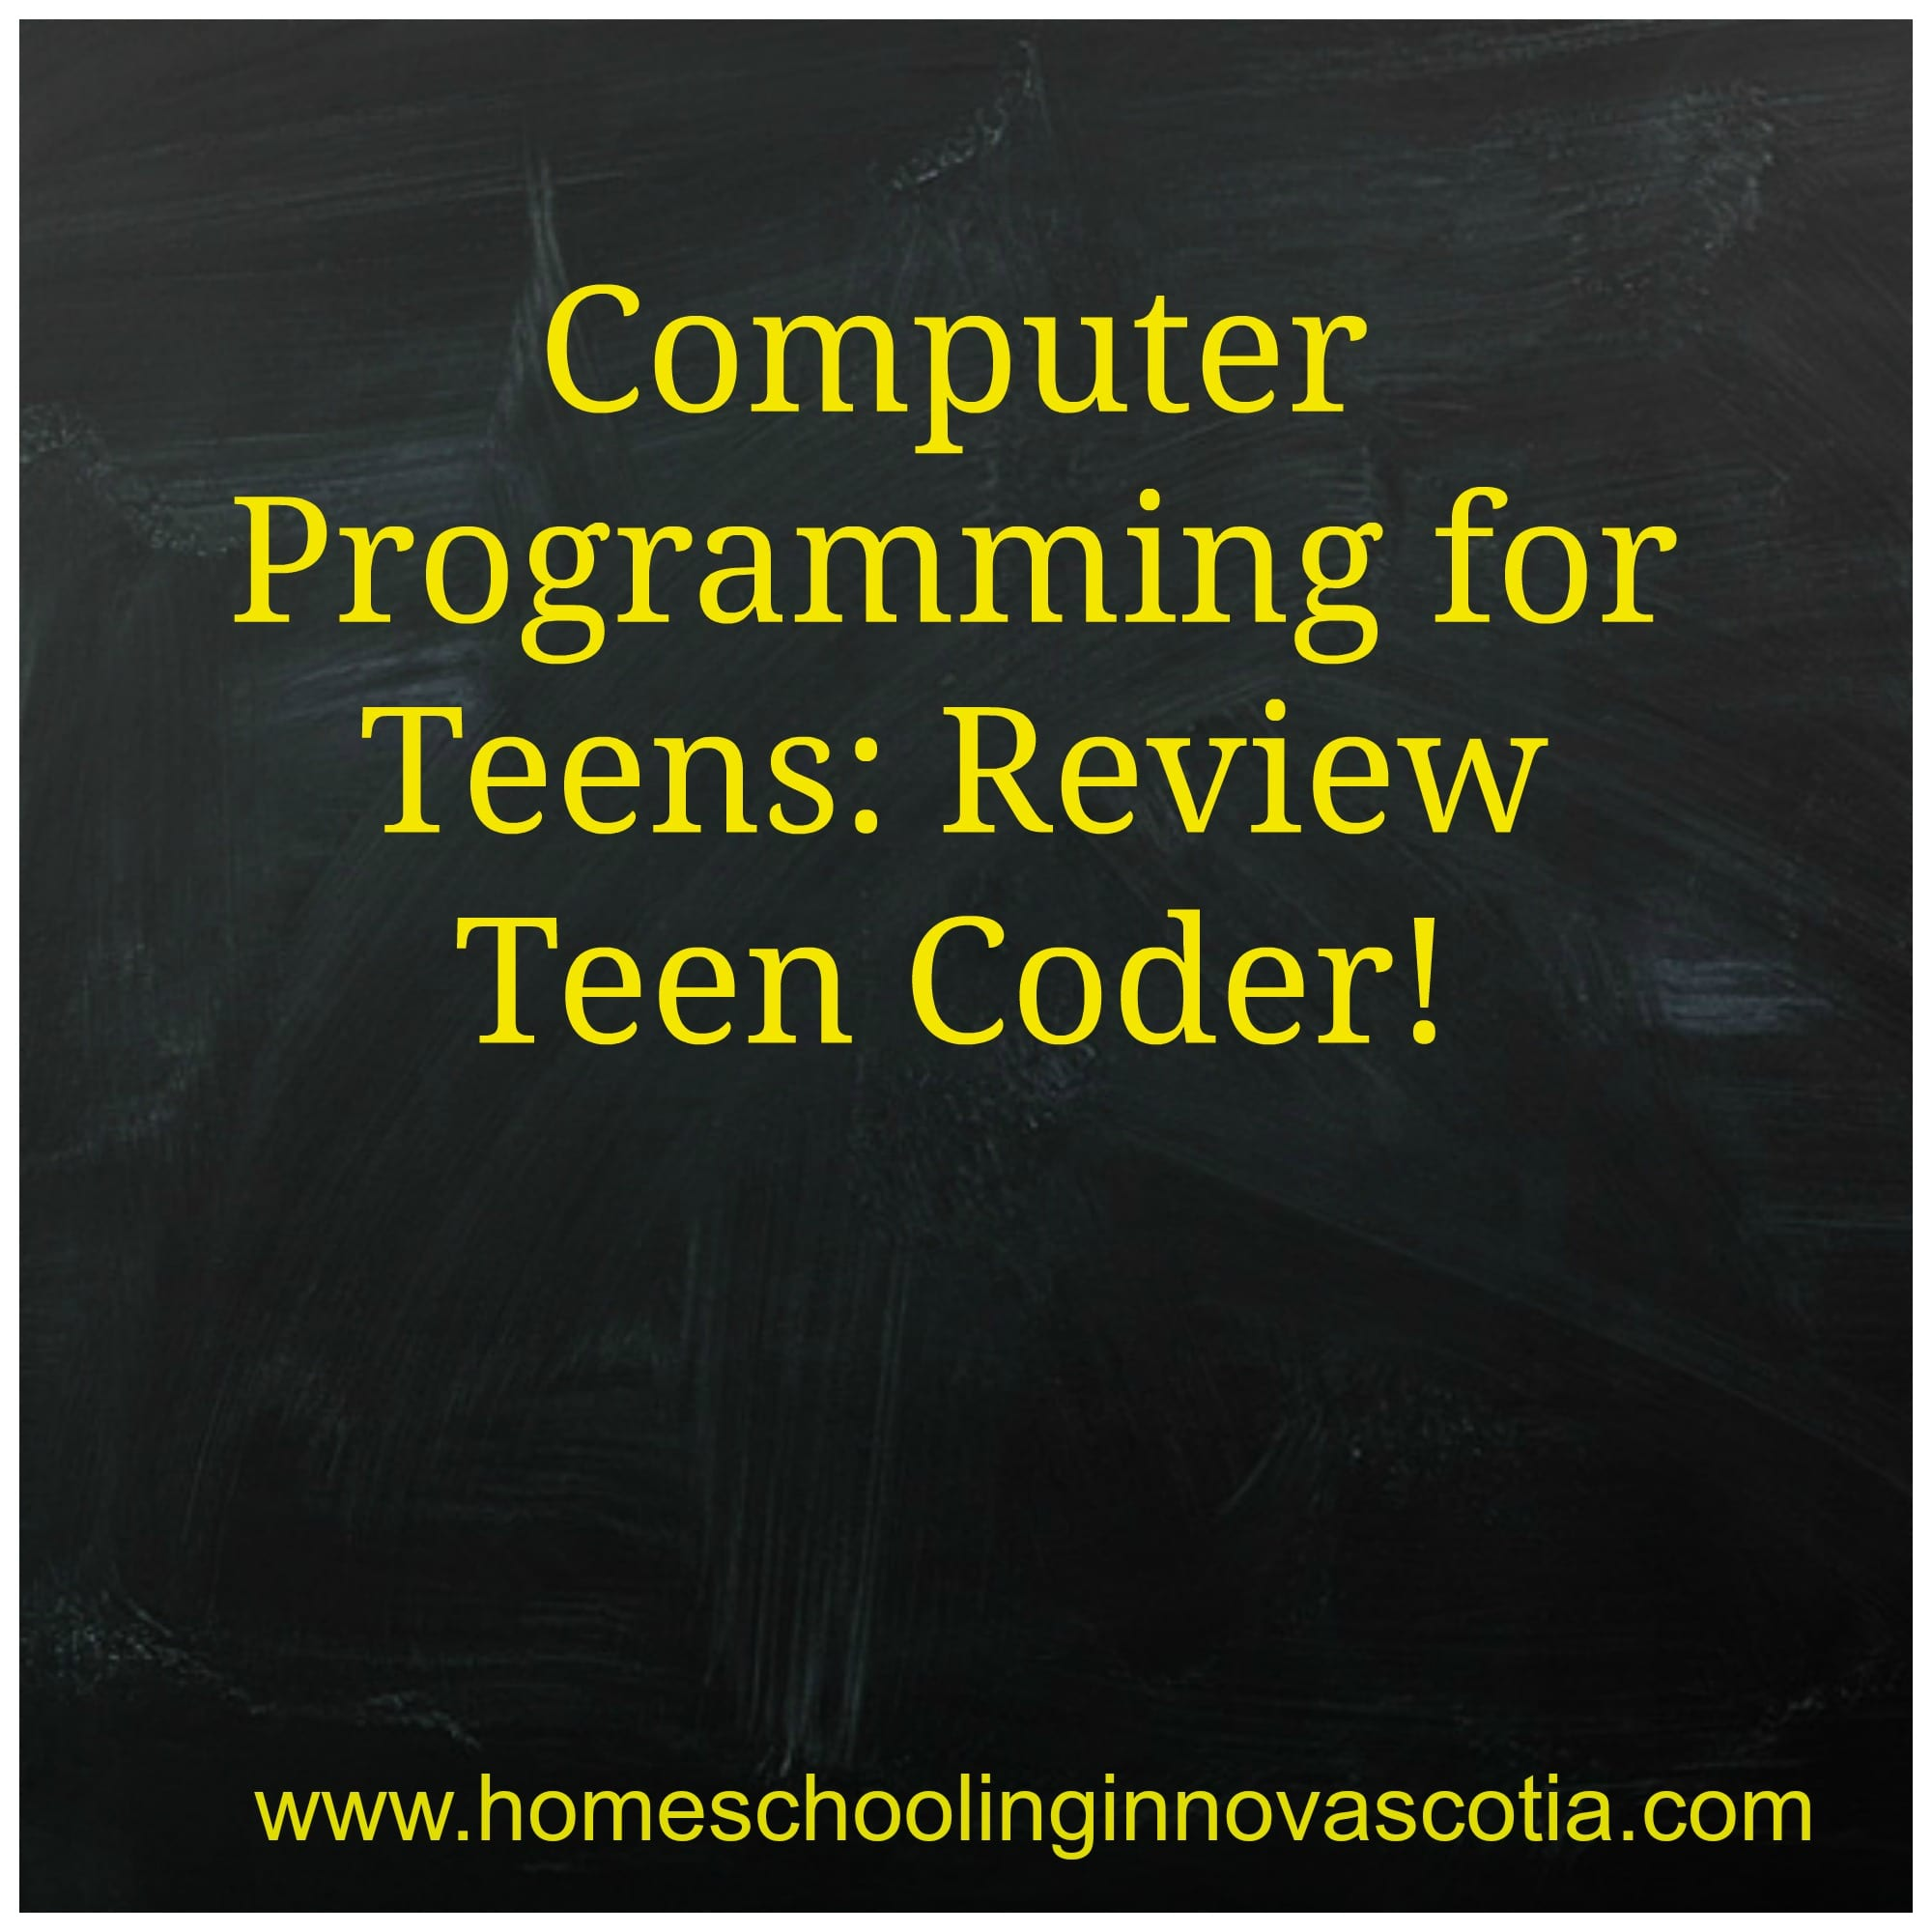 Teen Coder Review Pic